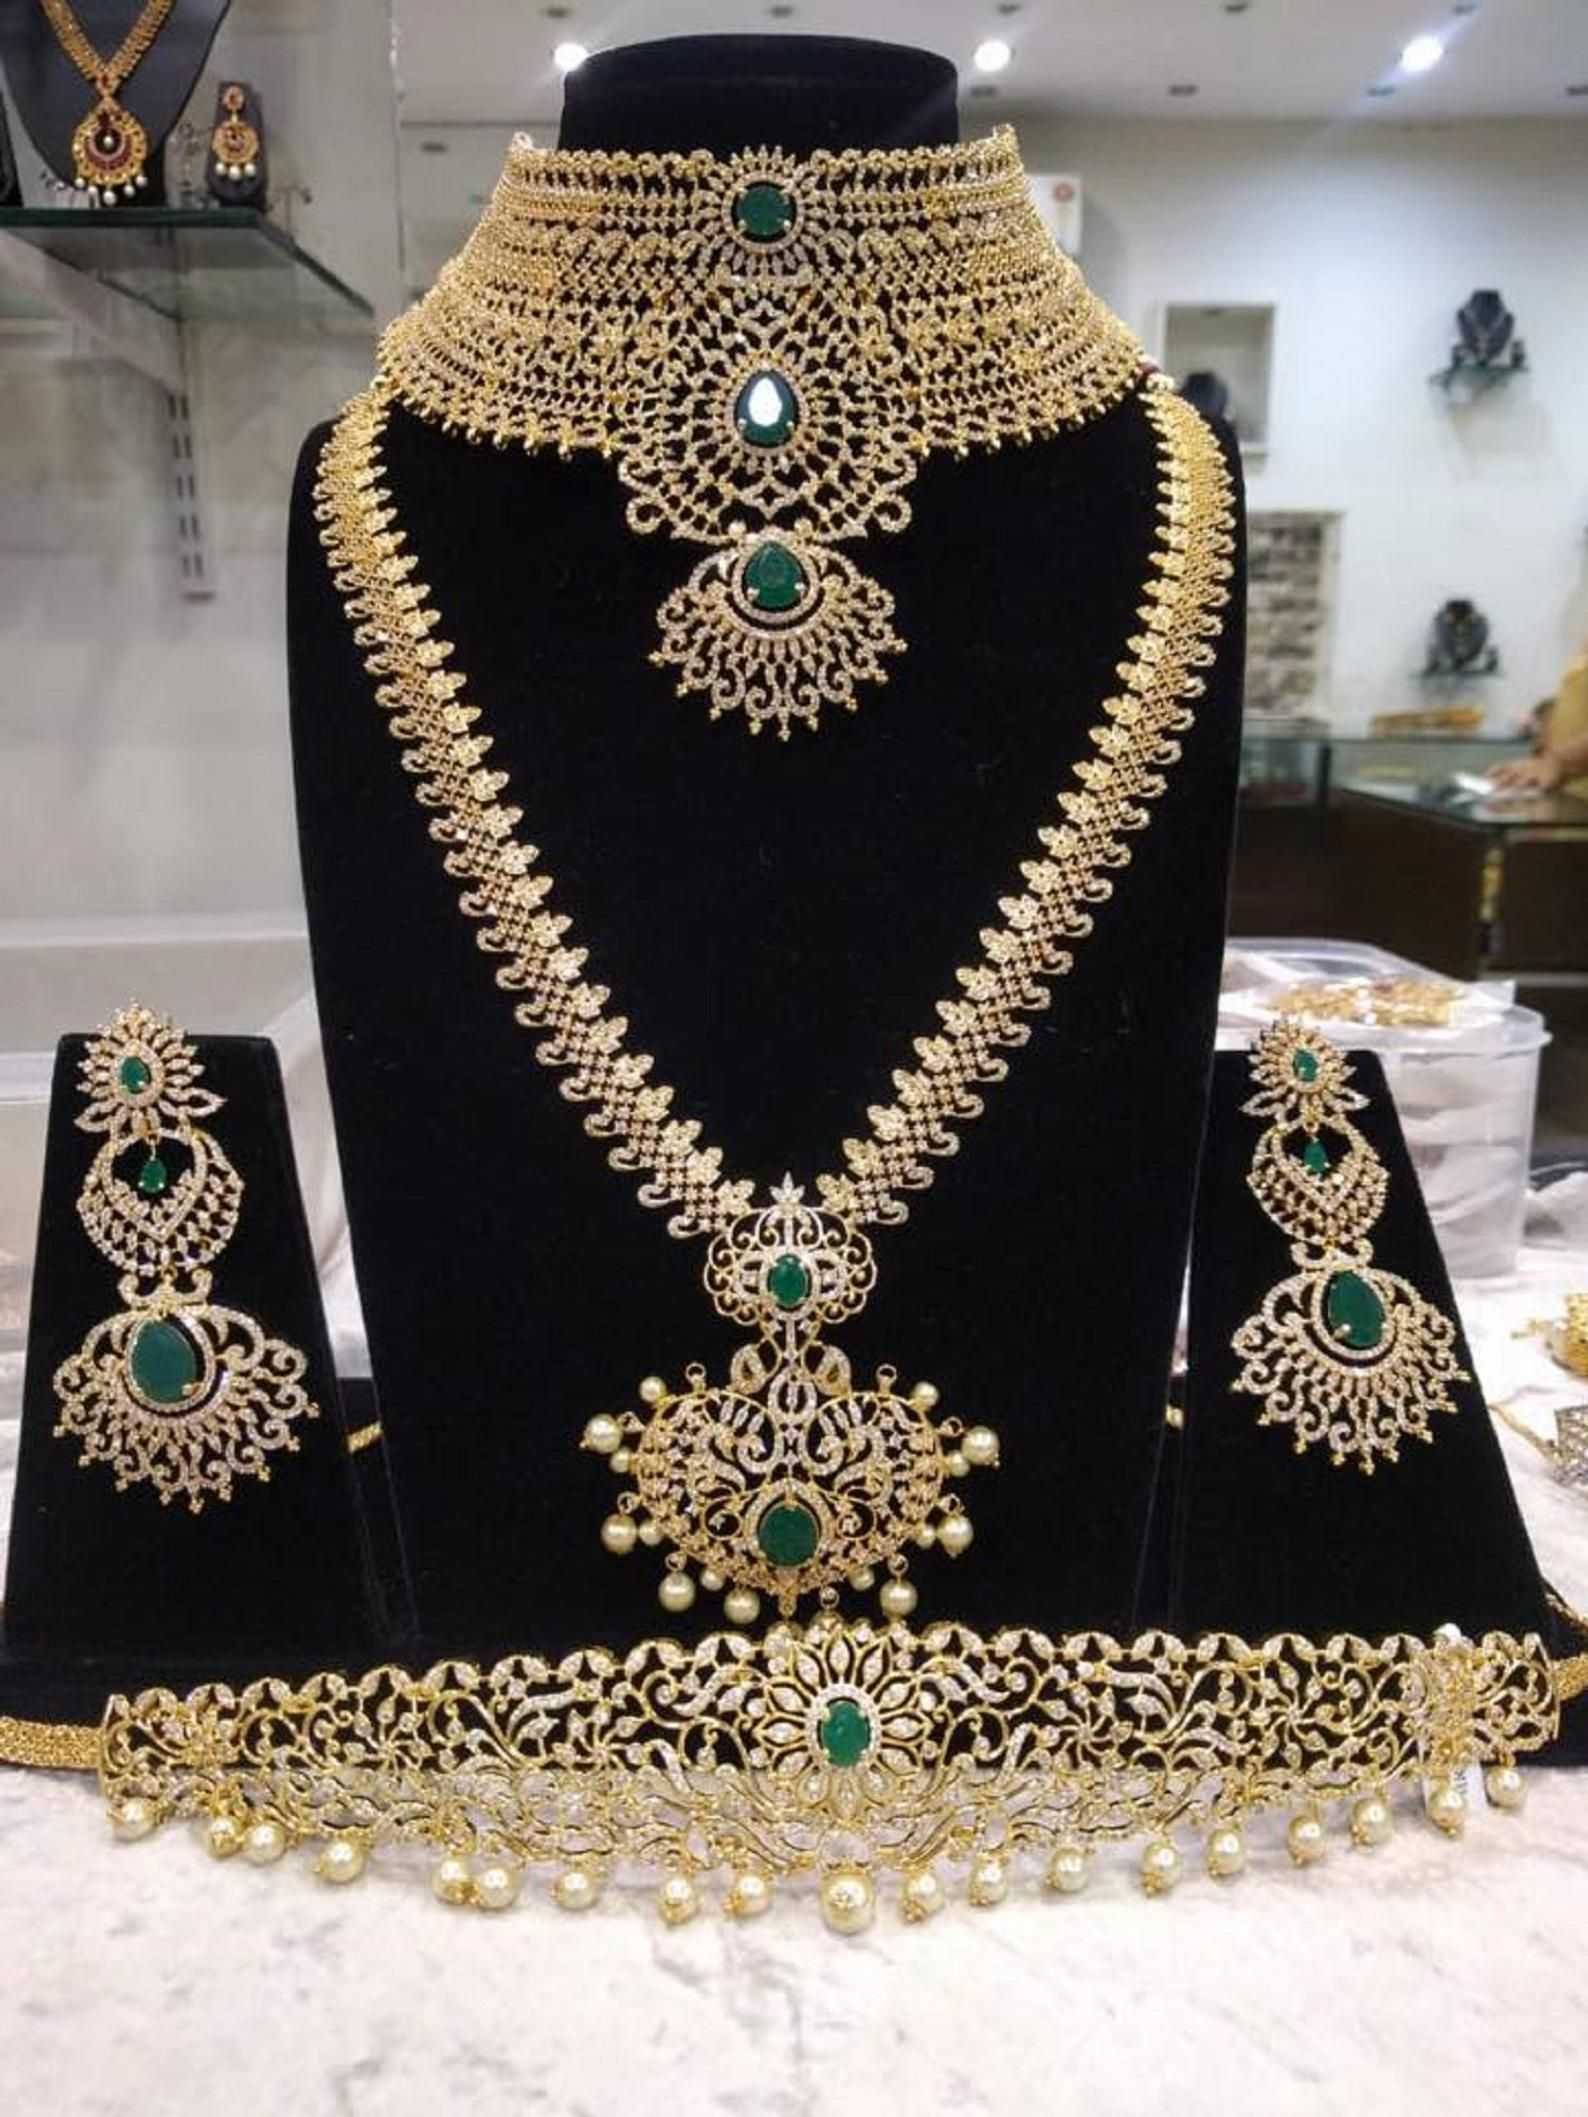 263590aa62 The Grand Bridal Set with a Long Necklace,Collar Choker Necklace,Earrings &  Waist Belt/Vaddanam in American Diamonds and Emeralds(1gm Gold)